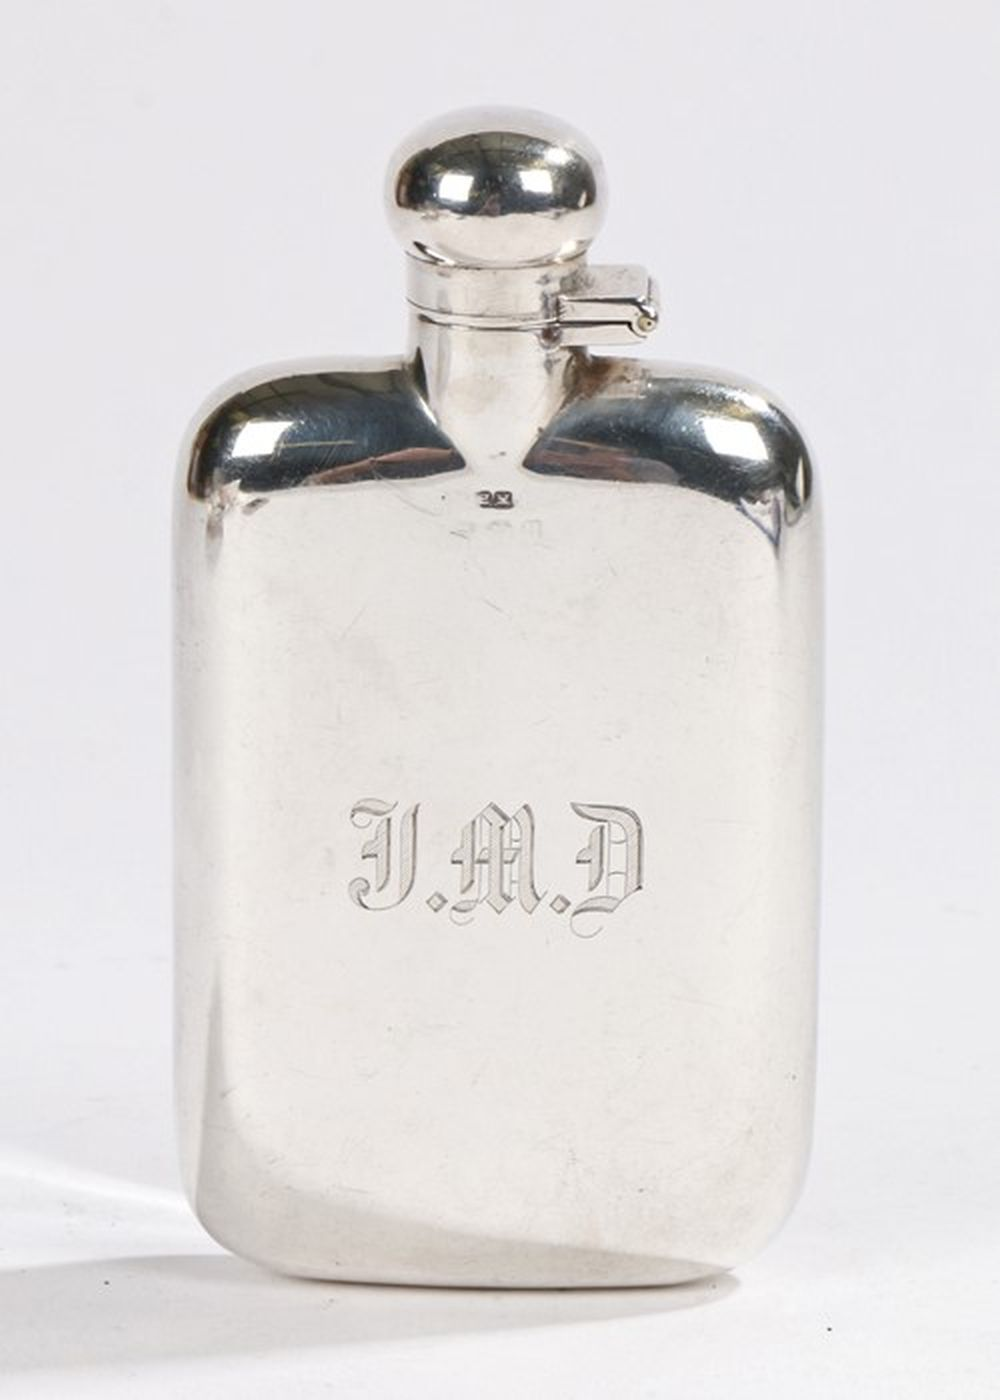 Early 20th Century silver hip flask, Birmingham marks rubbed, maker Henry Matthews, with bayonet fit